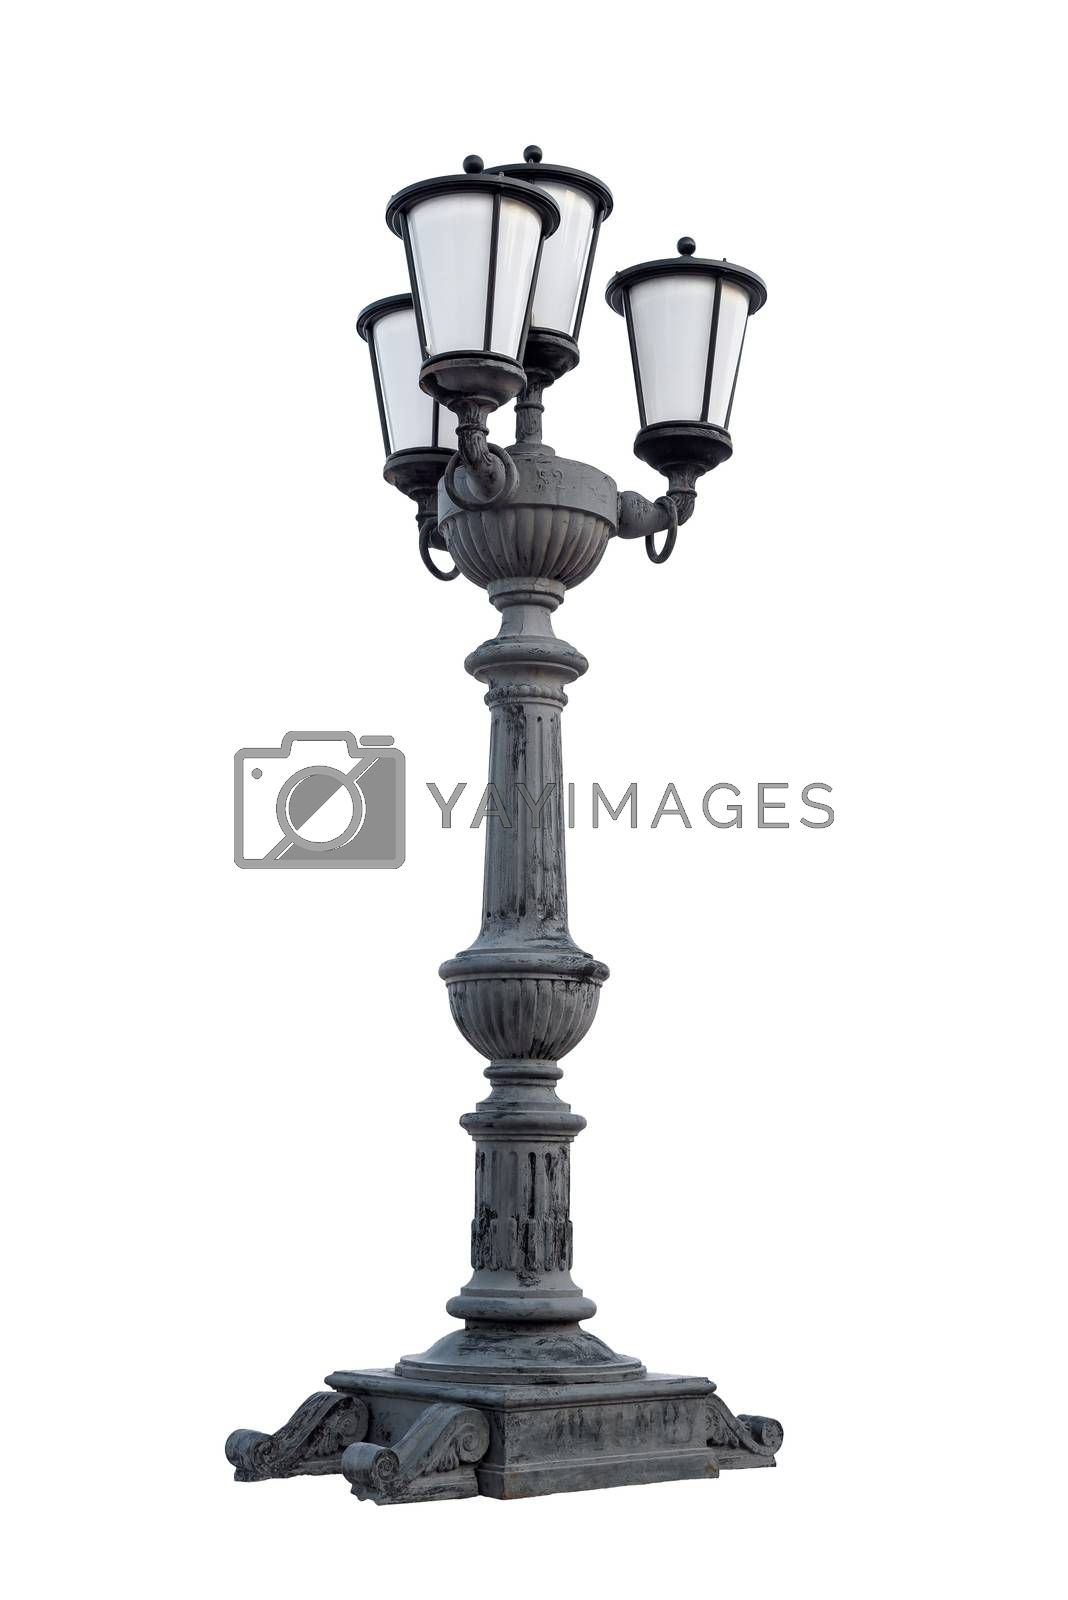 Street lantern isolated on white background with clipping path